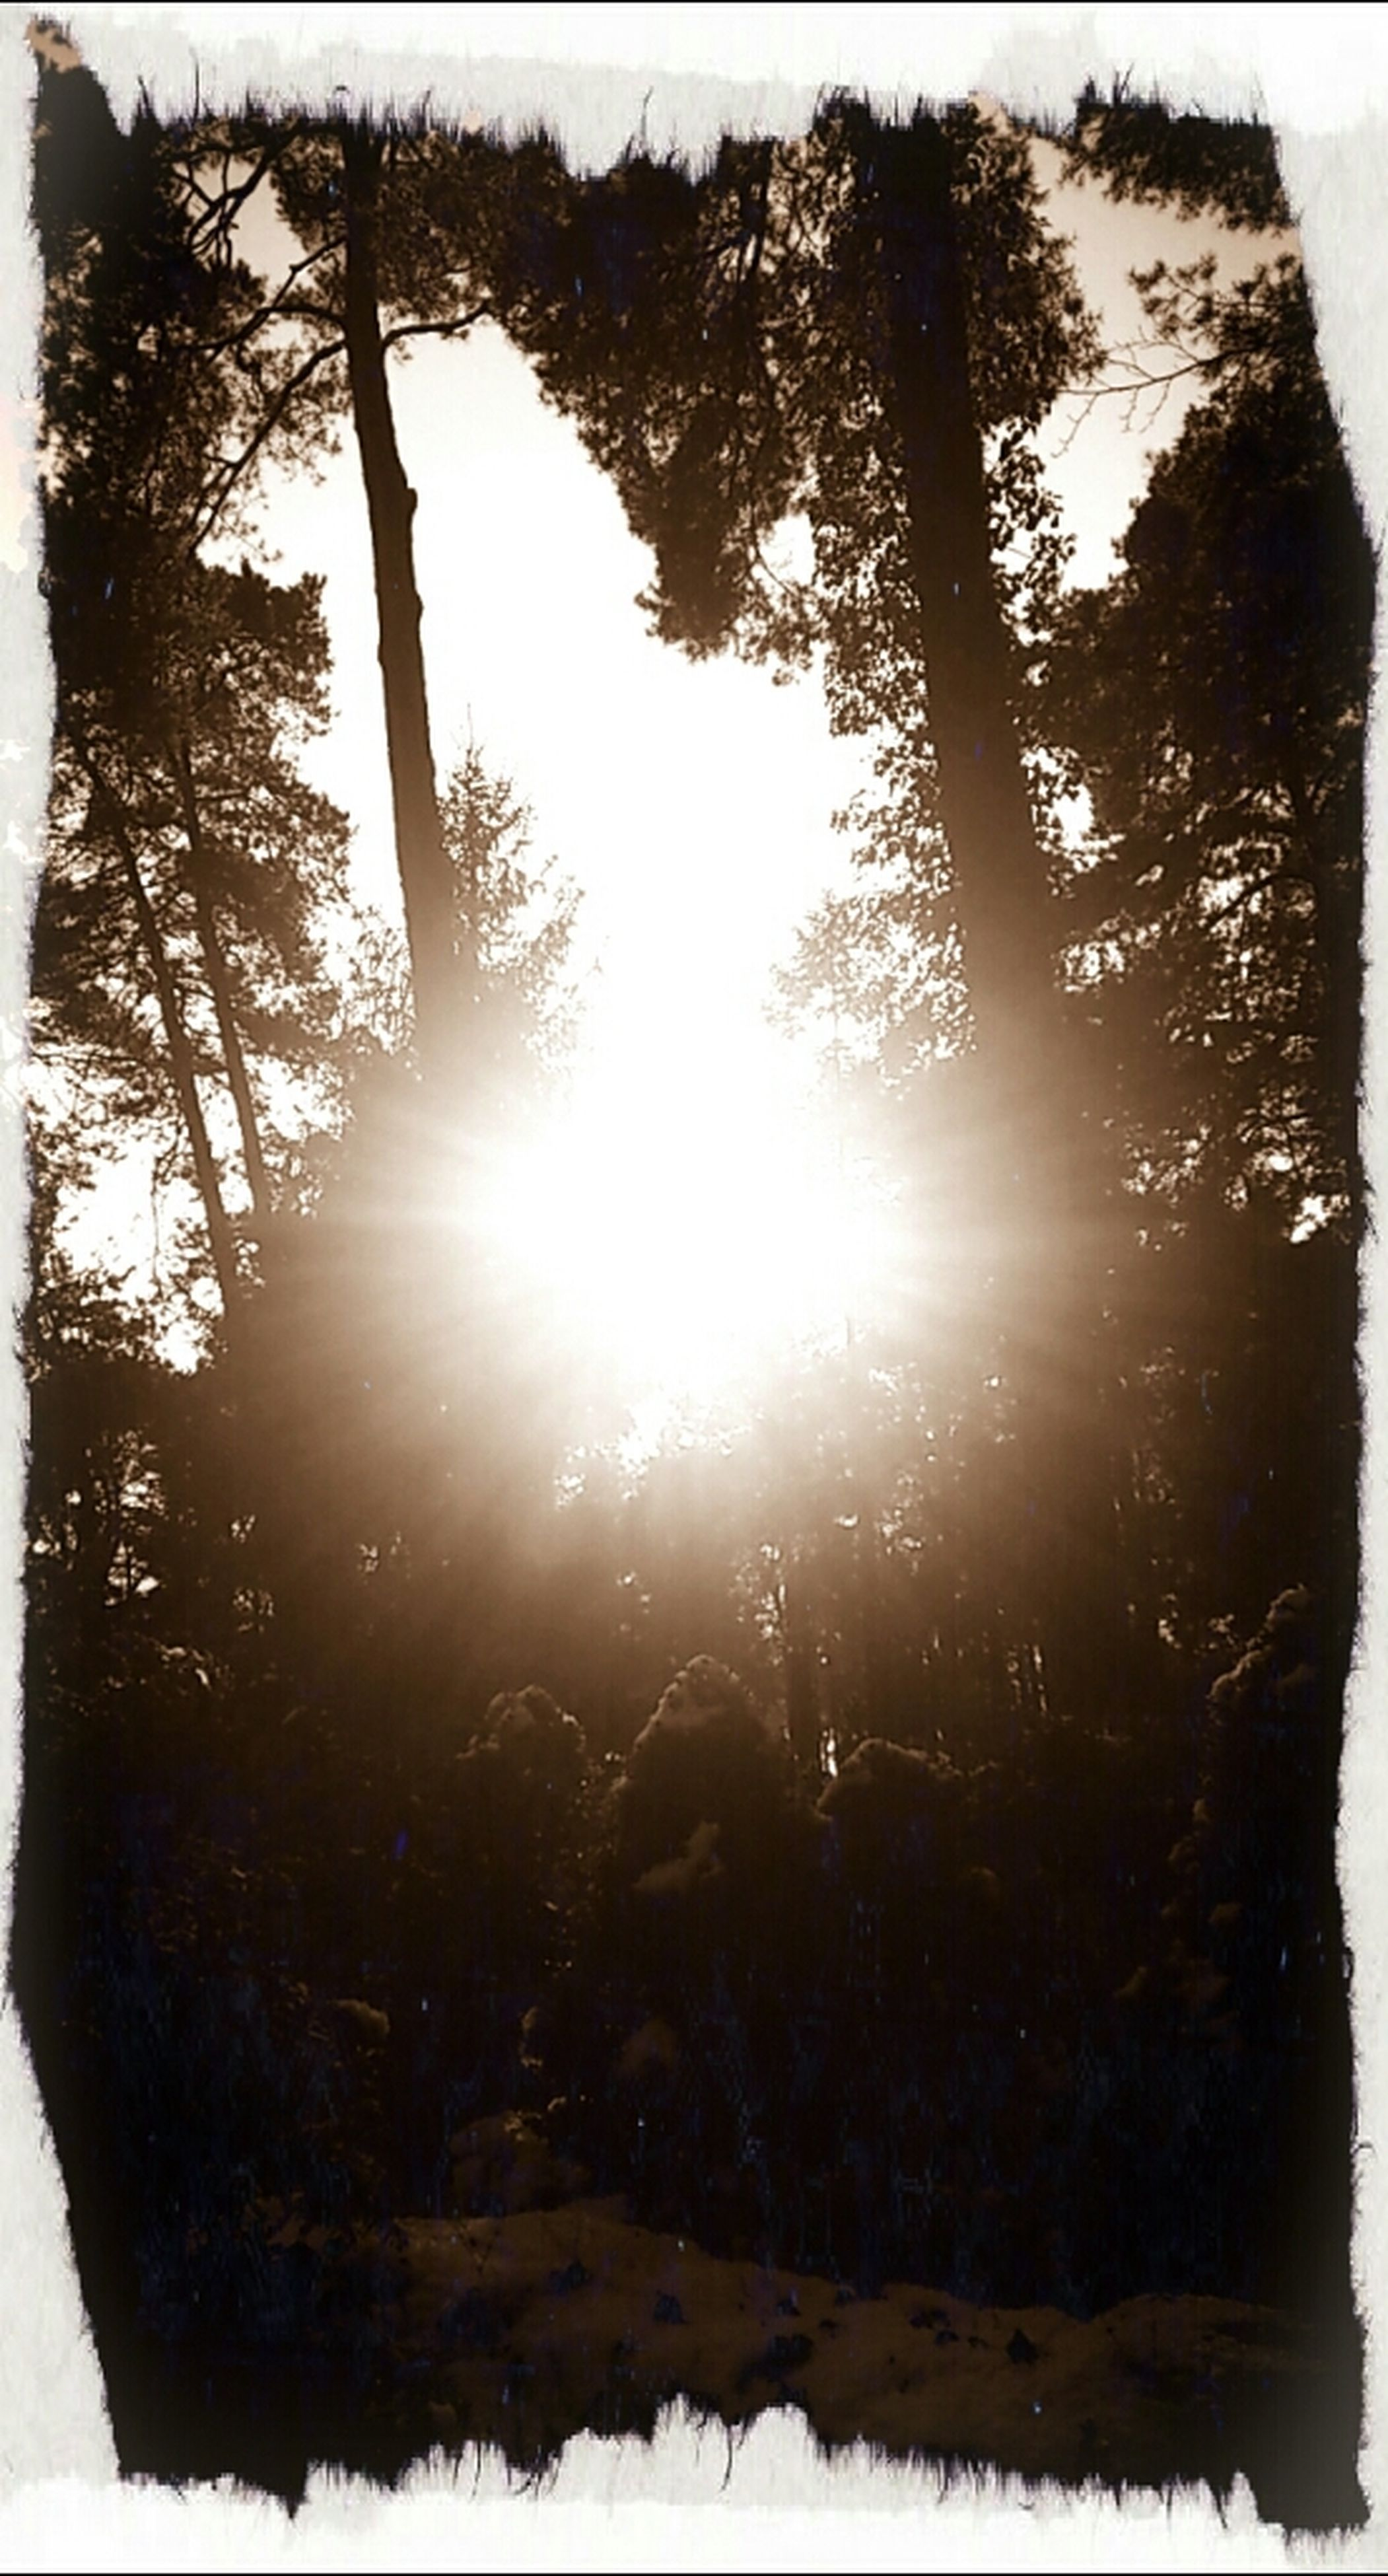 sun, transfer print, sunbeam, tree, sunlight, lens flare, tranquility, auto post production filter, tranquil scene, nature, beauty in nature, scenics, winter, sky, silhouette, back lit, snow, bright, sunny, tree trunk